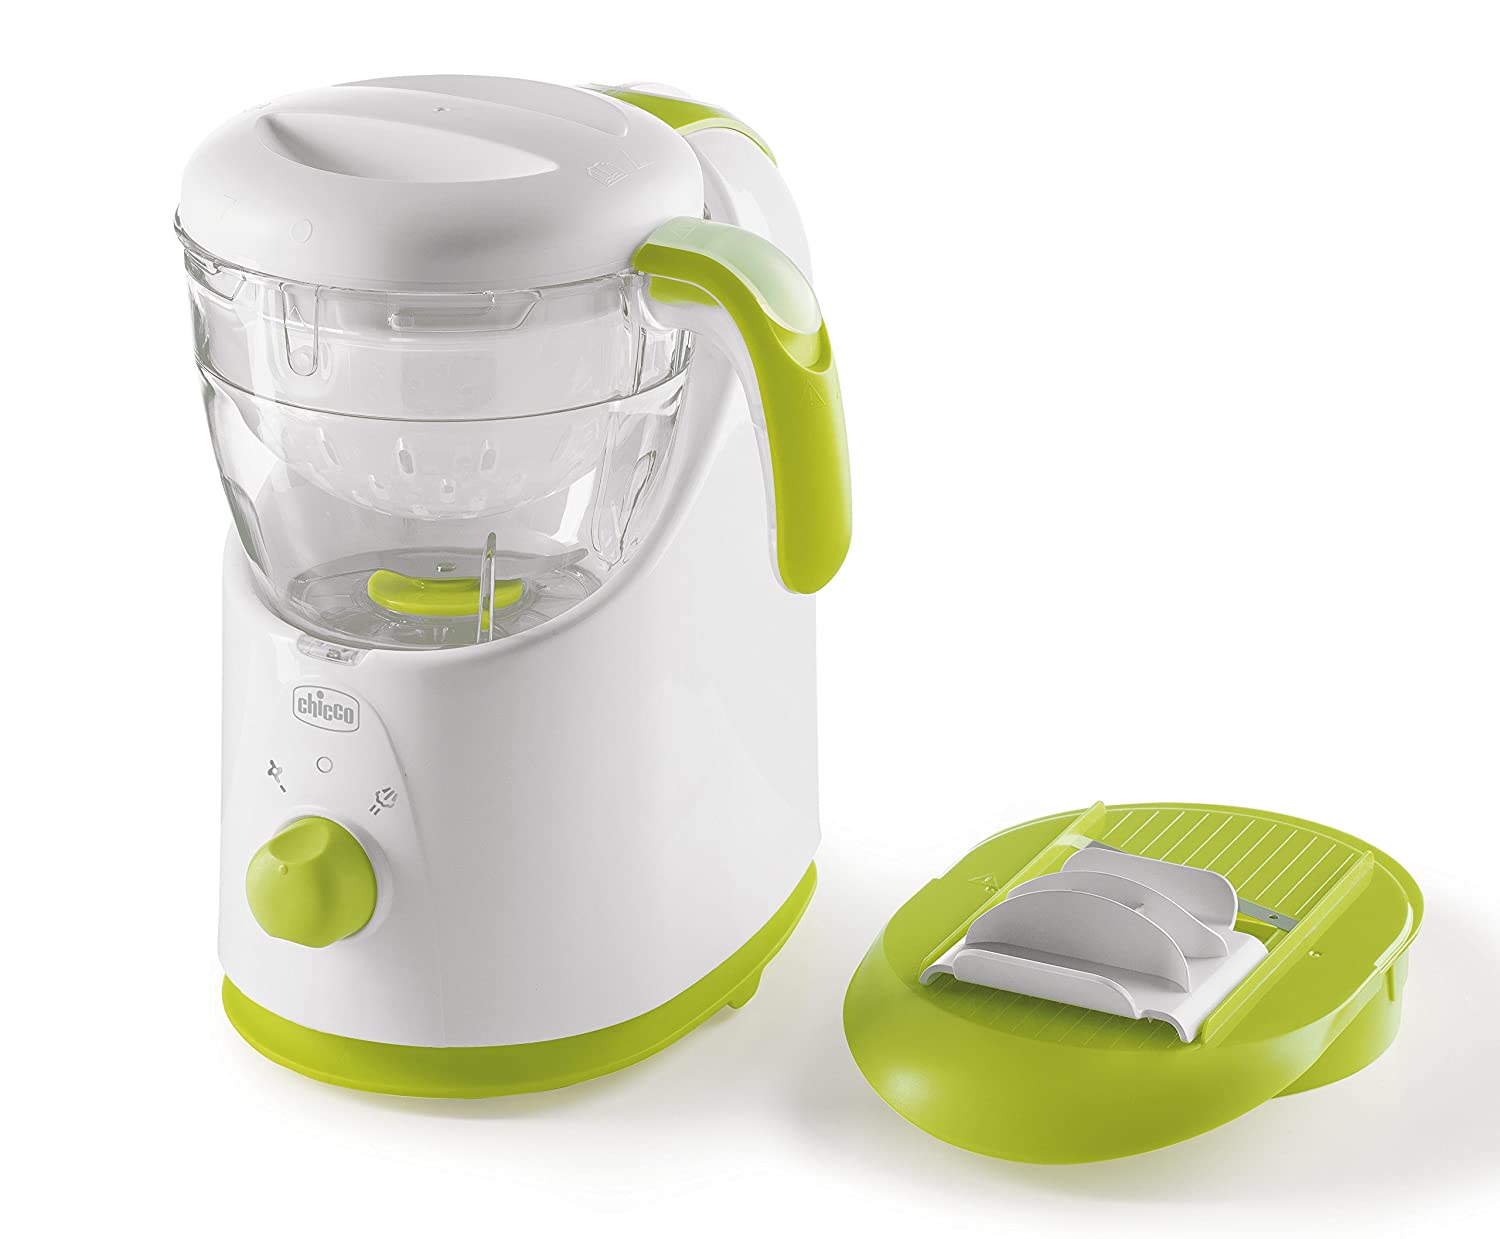 Chicco 00007656000000 Dampfgarer Easy Meal - Bpa frei - mehrfarbig